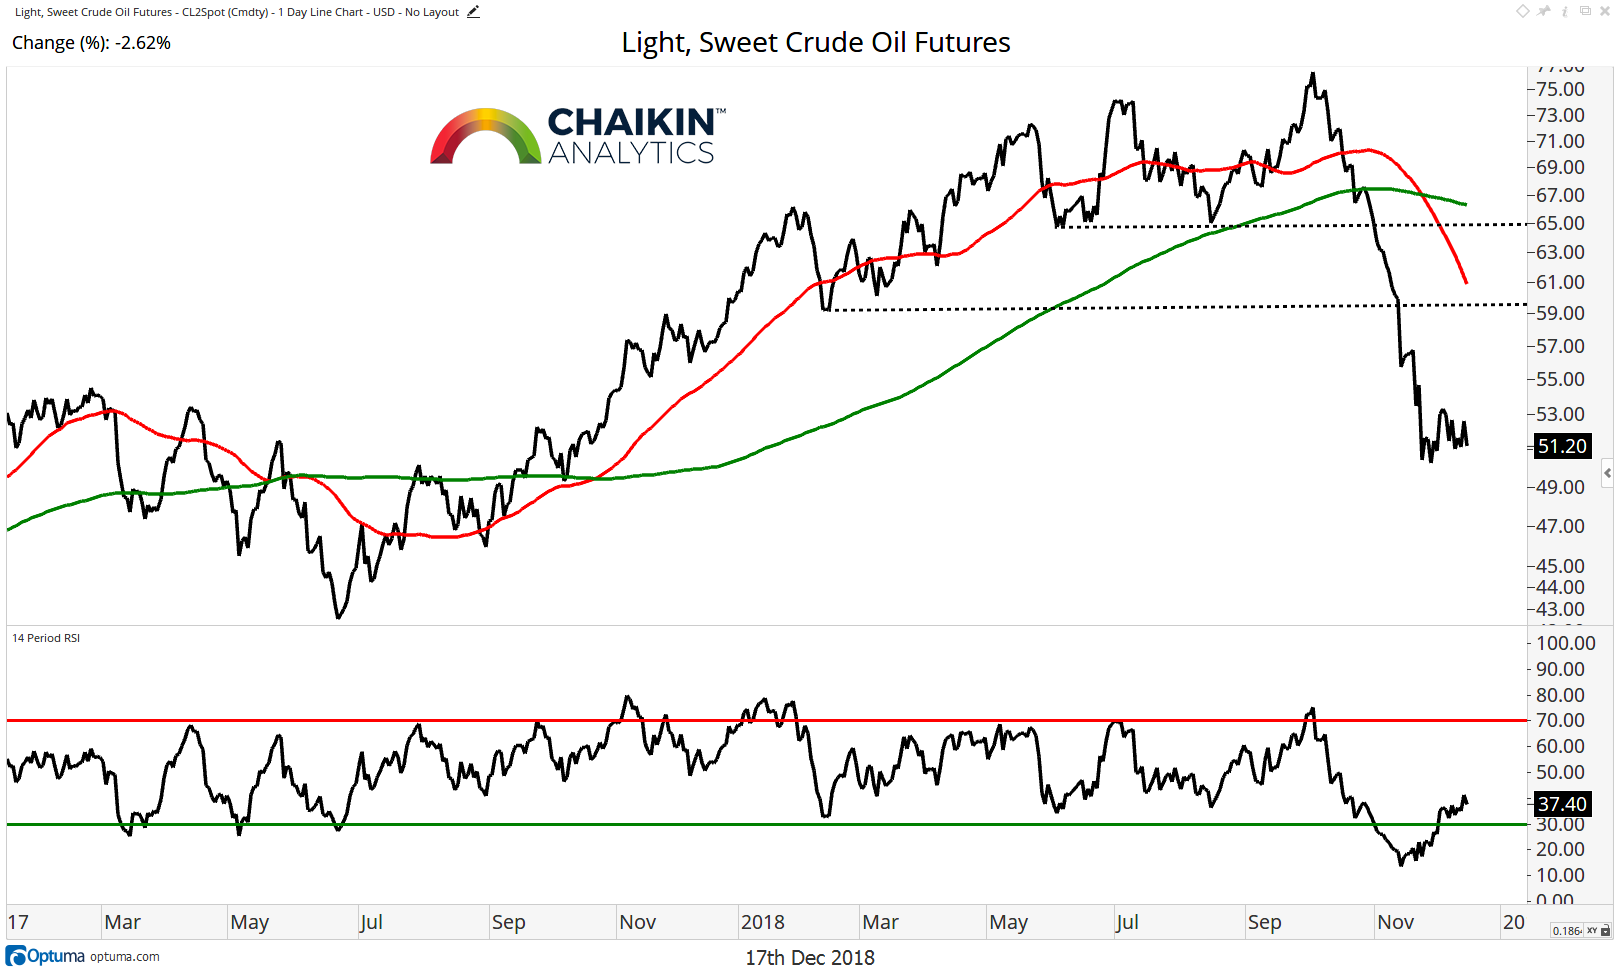 crude oil price correction decline trend bearish month december year 2018